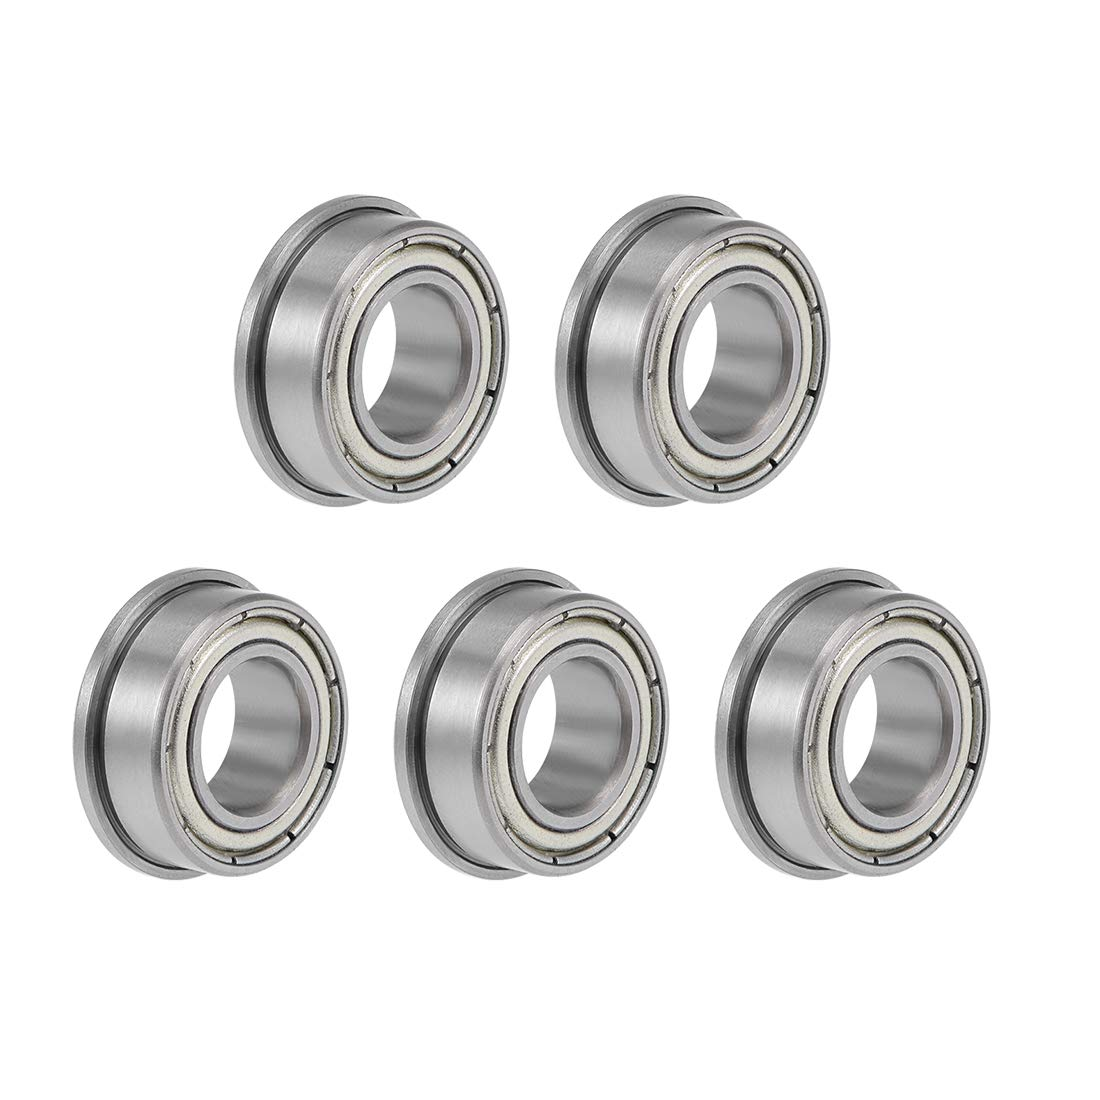 uxcell F63800ZZ Sale SALE% OFF Max 57% OFF Flange Ball Bearing Shielded Chrome Be 10x19x7mm